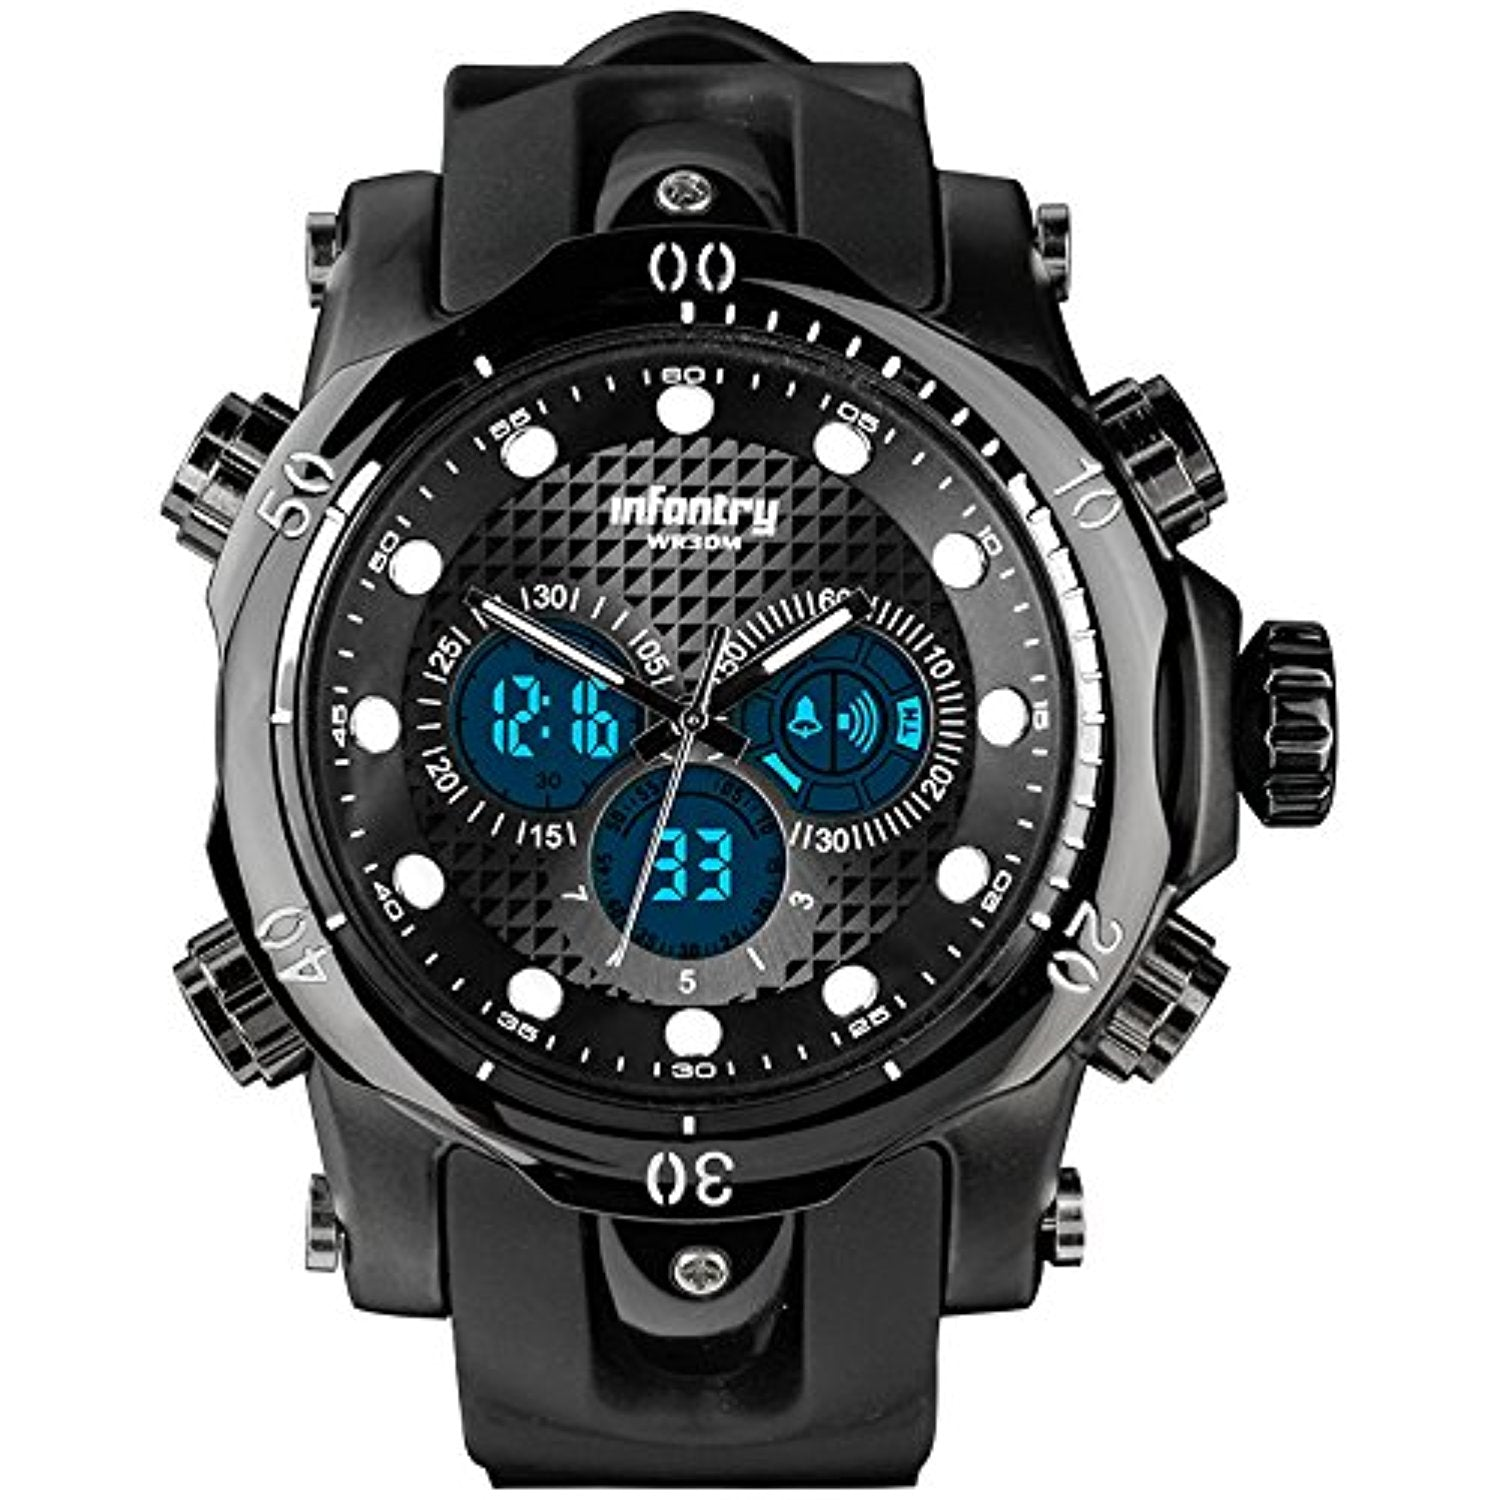 style watches complex big mens million over